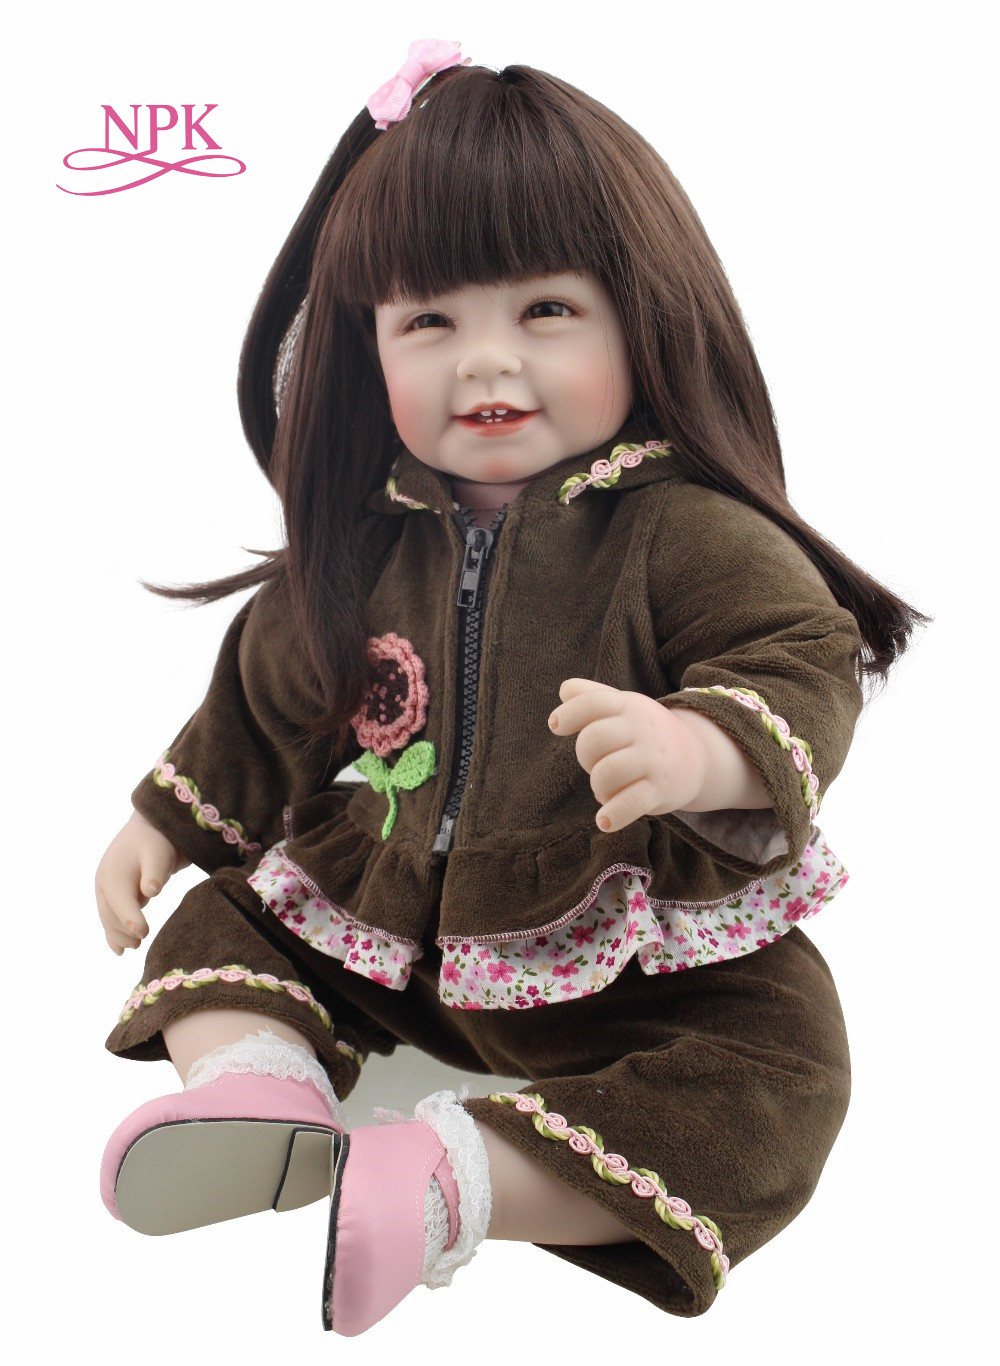 NPK Silicone Reborn Baby Doll Toys 22 inch with Long hair Realistic Baby Dolls 100% Handmade Girl Reborns Kids PlaymatesNPK Silicone Reborn Baby Doll Toys 22 inch with Long hair Realistic Baby Dolls 100% Handmade Girl Reborns Kids Playmates